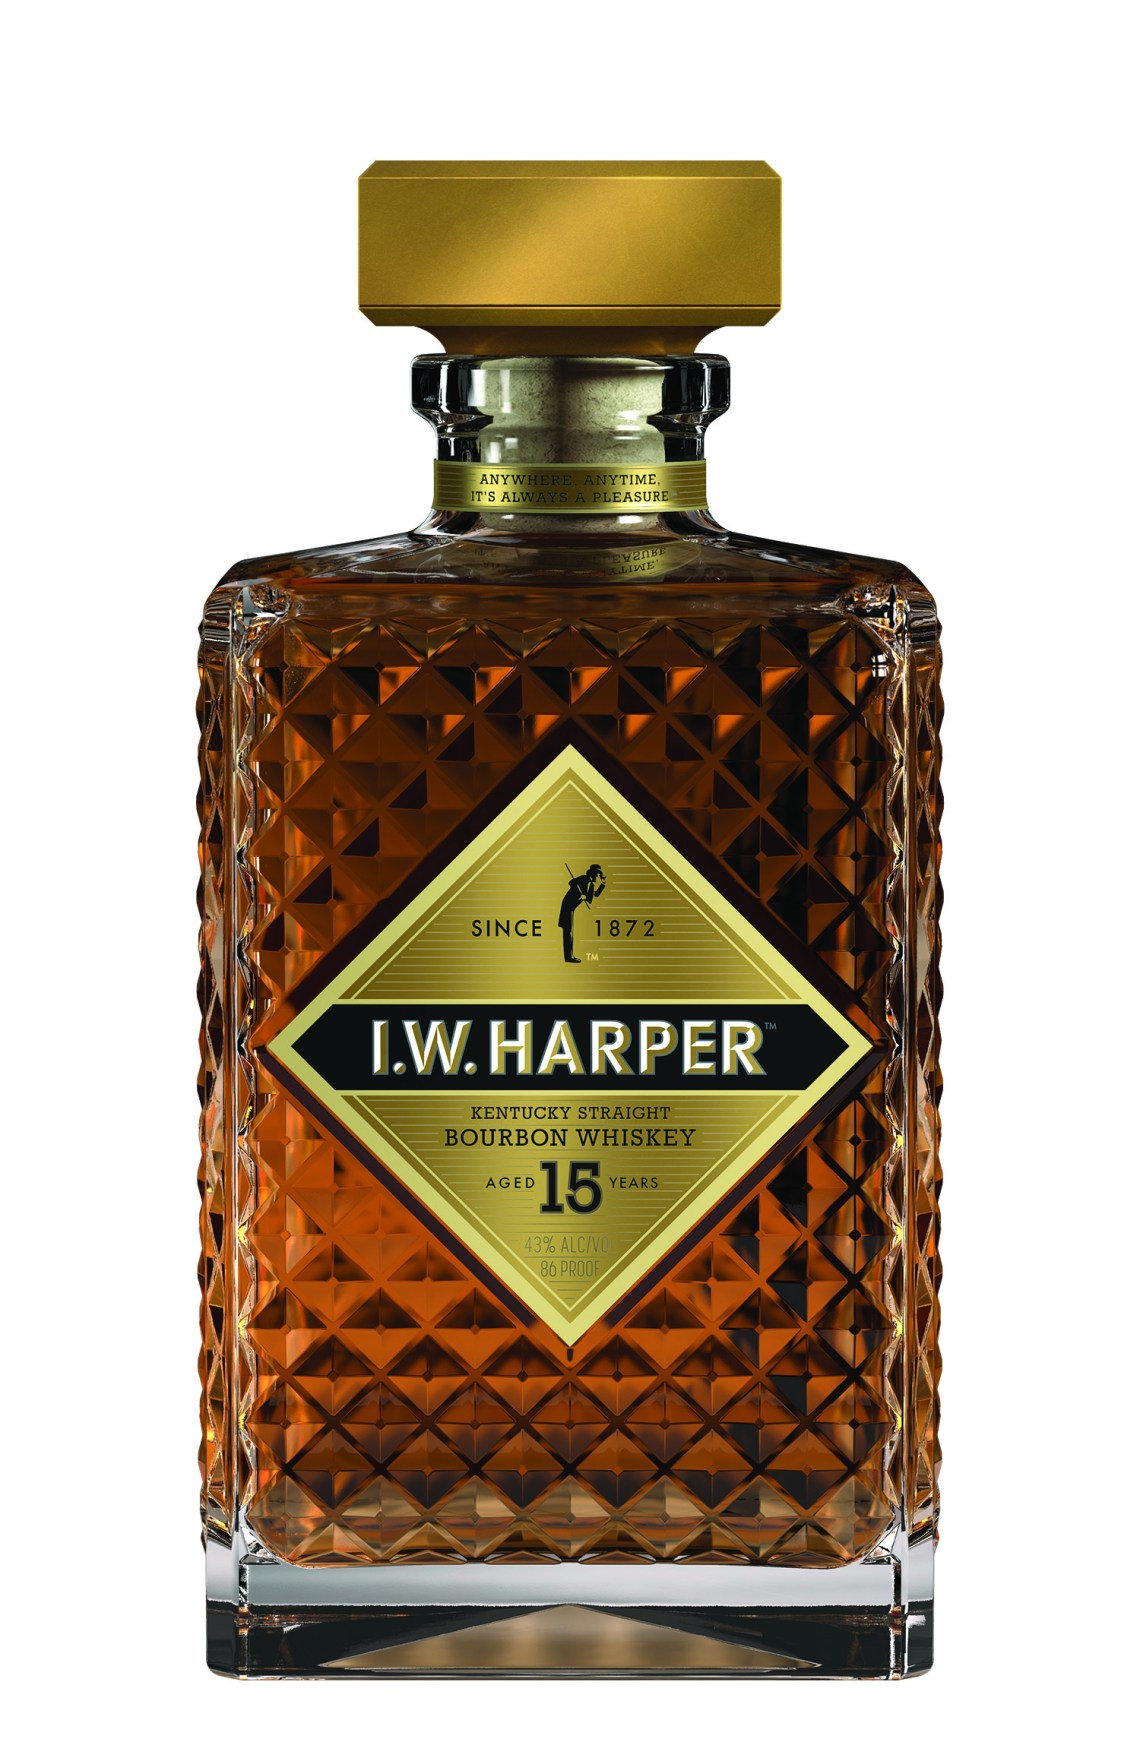 I.W. Harper Kentucky Straight Bourbon Whiskey 15 Years Old